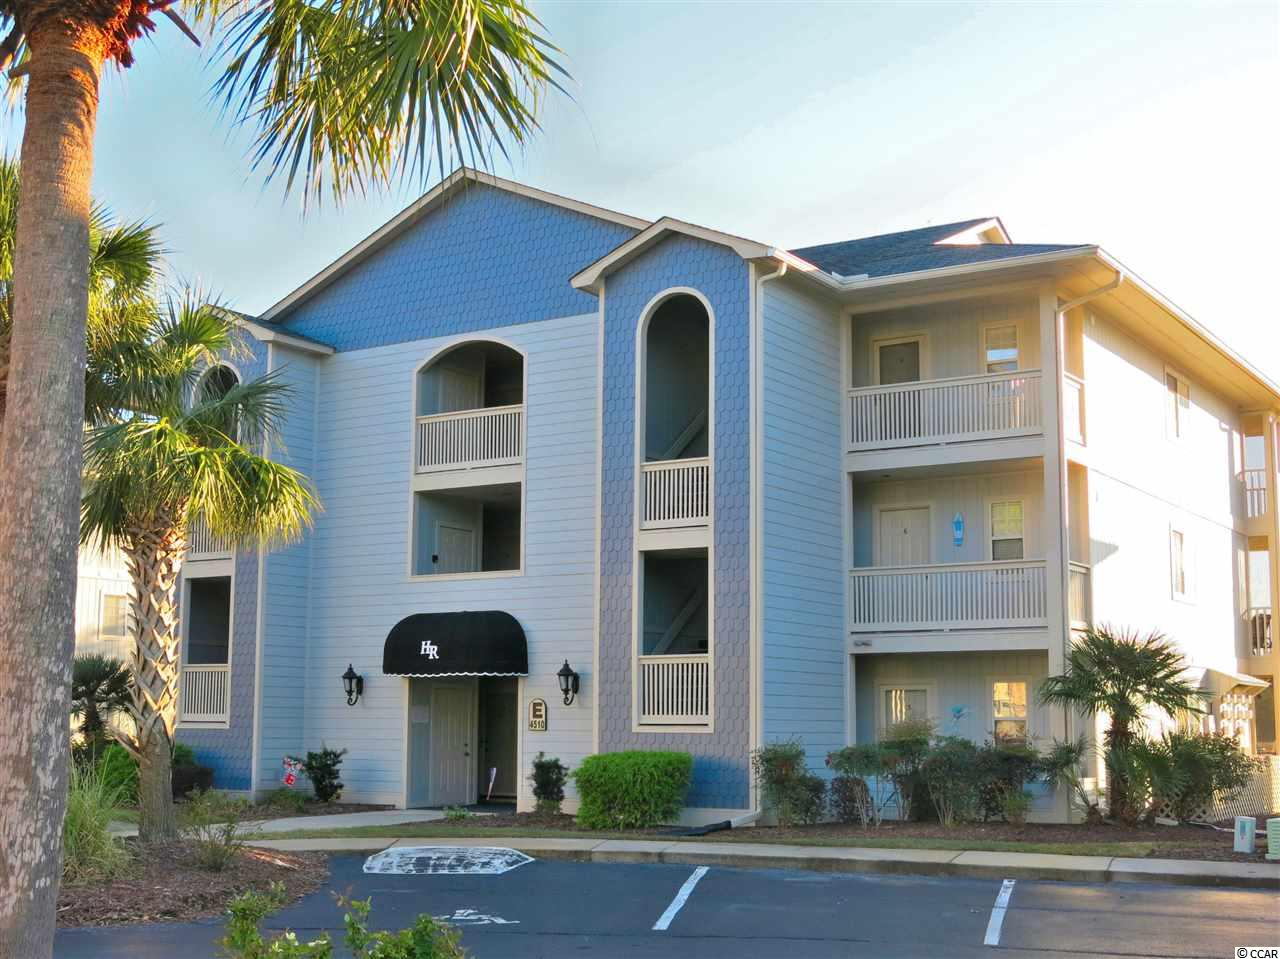 Extravagant and spacious corner unit with excellent, unobstructed views of the Intercoastal Waterway and Coquina Harbor. Roomy 2 bed/2bath condo nestled in the heart of Little River just minutes from North Myrtle Beach. Unit has been recently updated with new floors, new vanities, fresh paint, new refrigerator, new range/oven, and even a brand new HVAC system installed at the end of October 2020. Harbour Ridge units come with a walk-in storage room just across from the entrance door with enough room to store a large amount of gear. In addition to having a very clean, updated, and well maintained 2 bedroom condo, Harbour Ridge has excellent, well-maintained amenities with a pool, large sun deck area, powered/plumbed pavilion, clean restrooms, outside grills, and picnicking area on the edge of the marsh overlooking the gorgeous Intercoastal Waterway. Your semi-private oasis is waiting for you to come in and enjoy morning coffee watching the boats go by and the worlds of wildlife unique to these coastal areas along the South Carolina coastline. This property stands out above all others and will not last long! This property is being sold partially furnished and move-in ready!